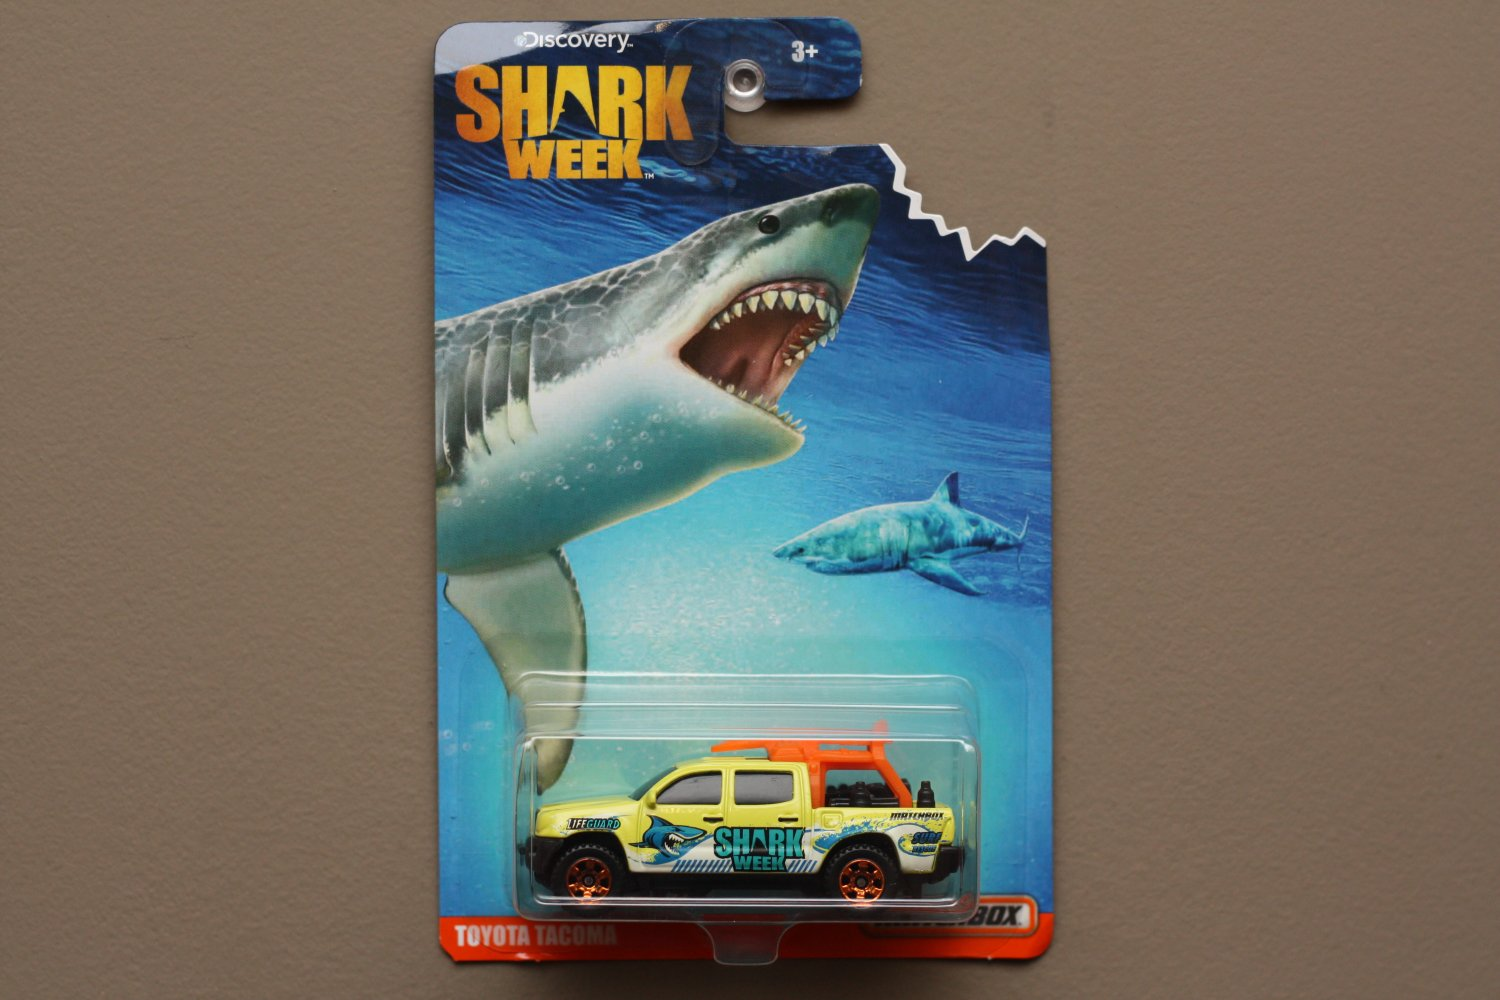 Matchbox 2016 Discovery Shark Week Toyota Tacoma (SEE CONDITION)